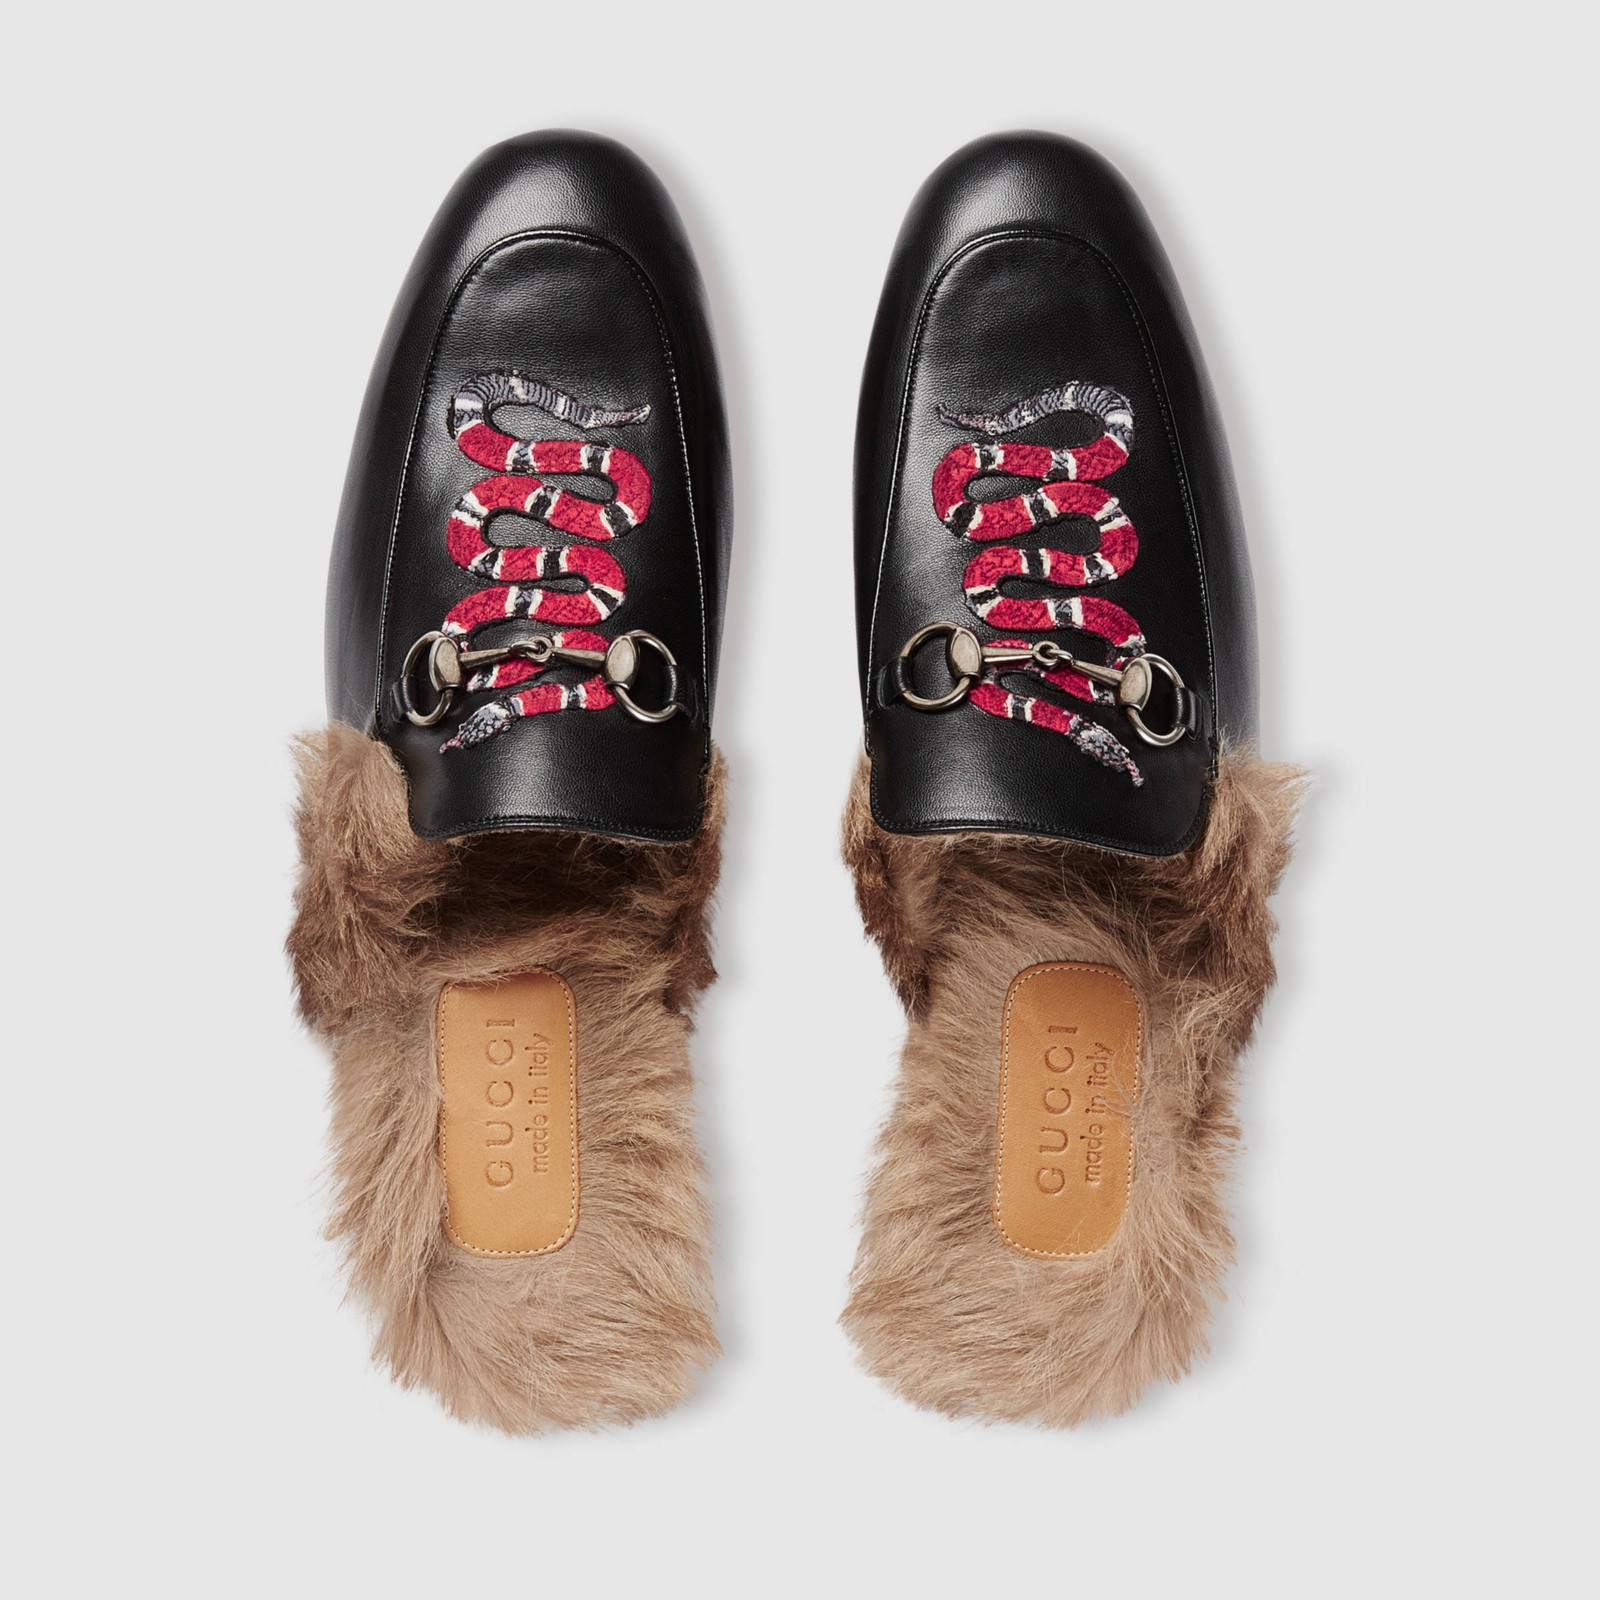 6fe1f3f6f04 Review  Gucci Princetown Leather Slipper (with Snake)